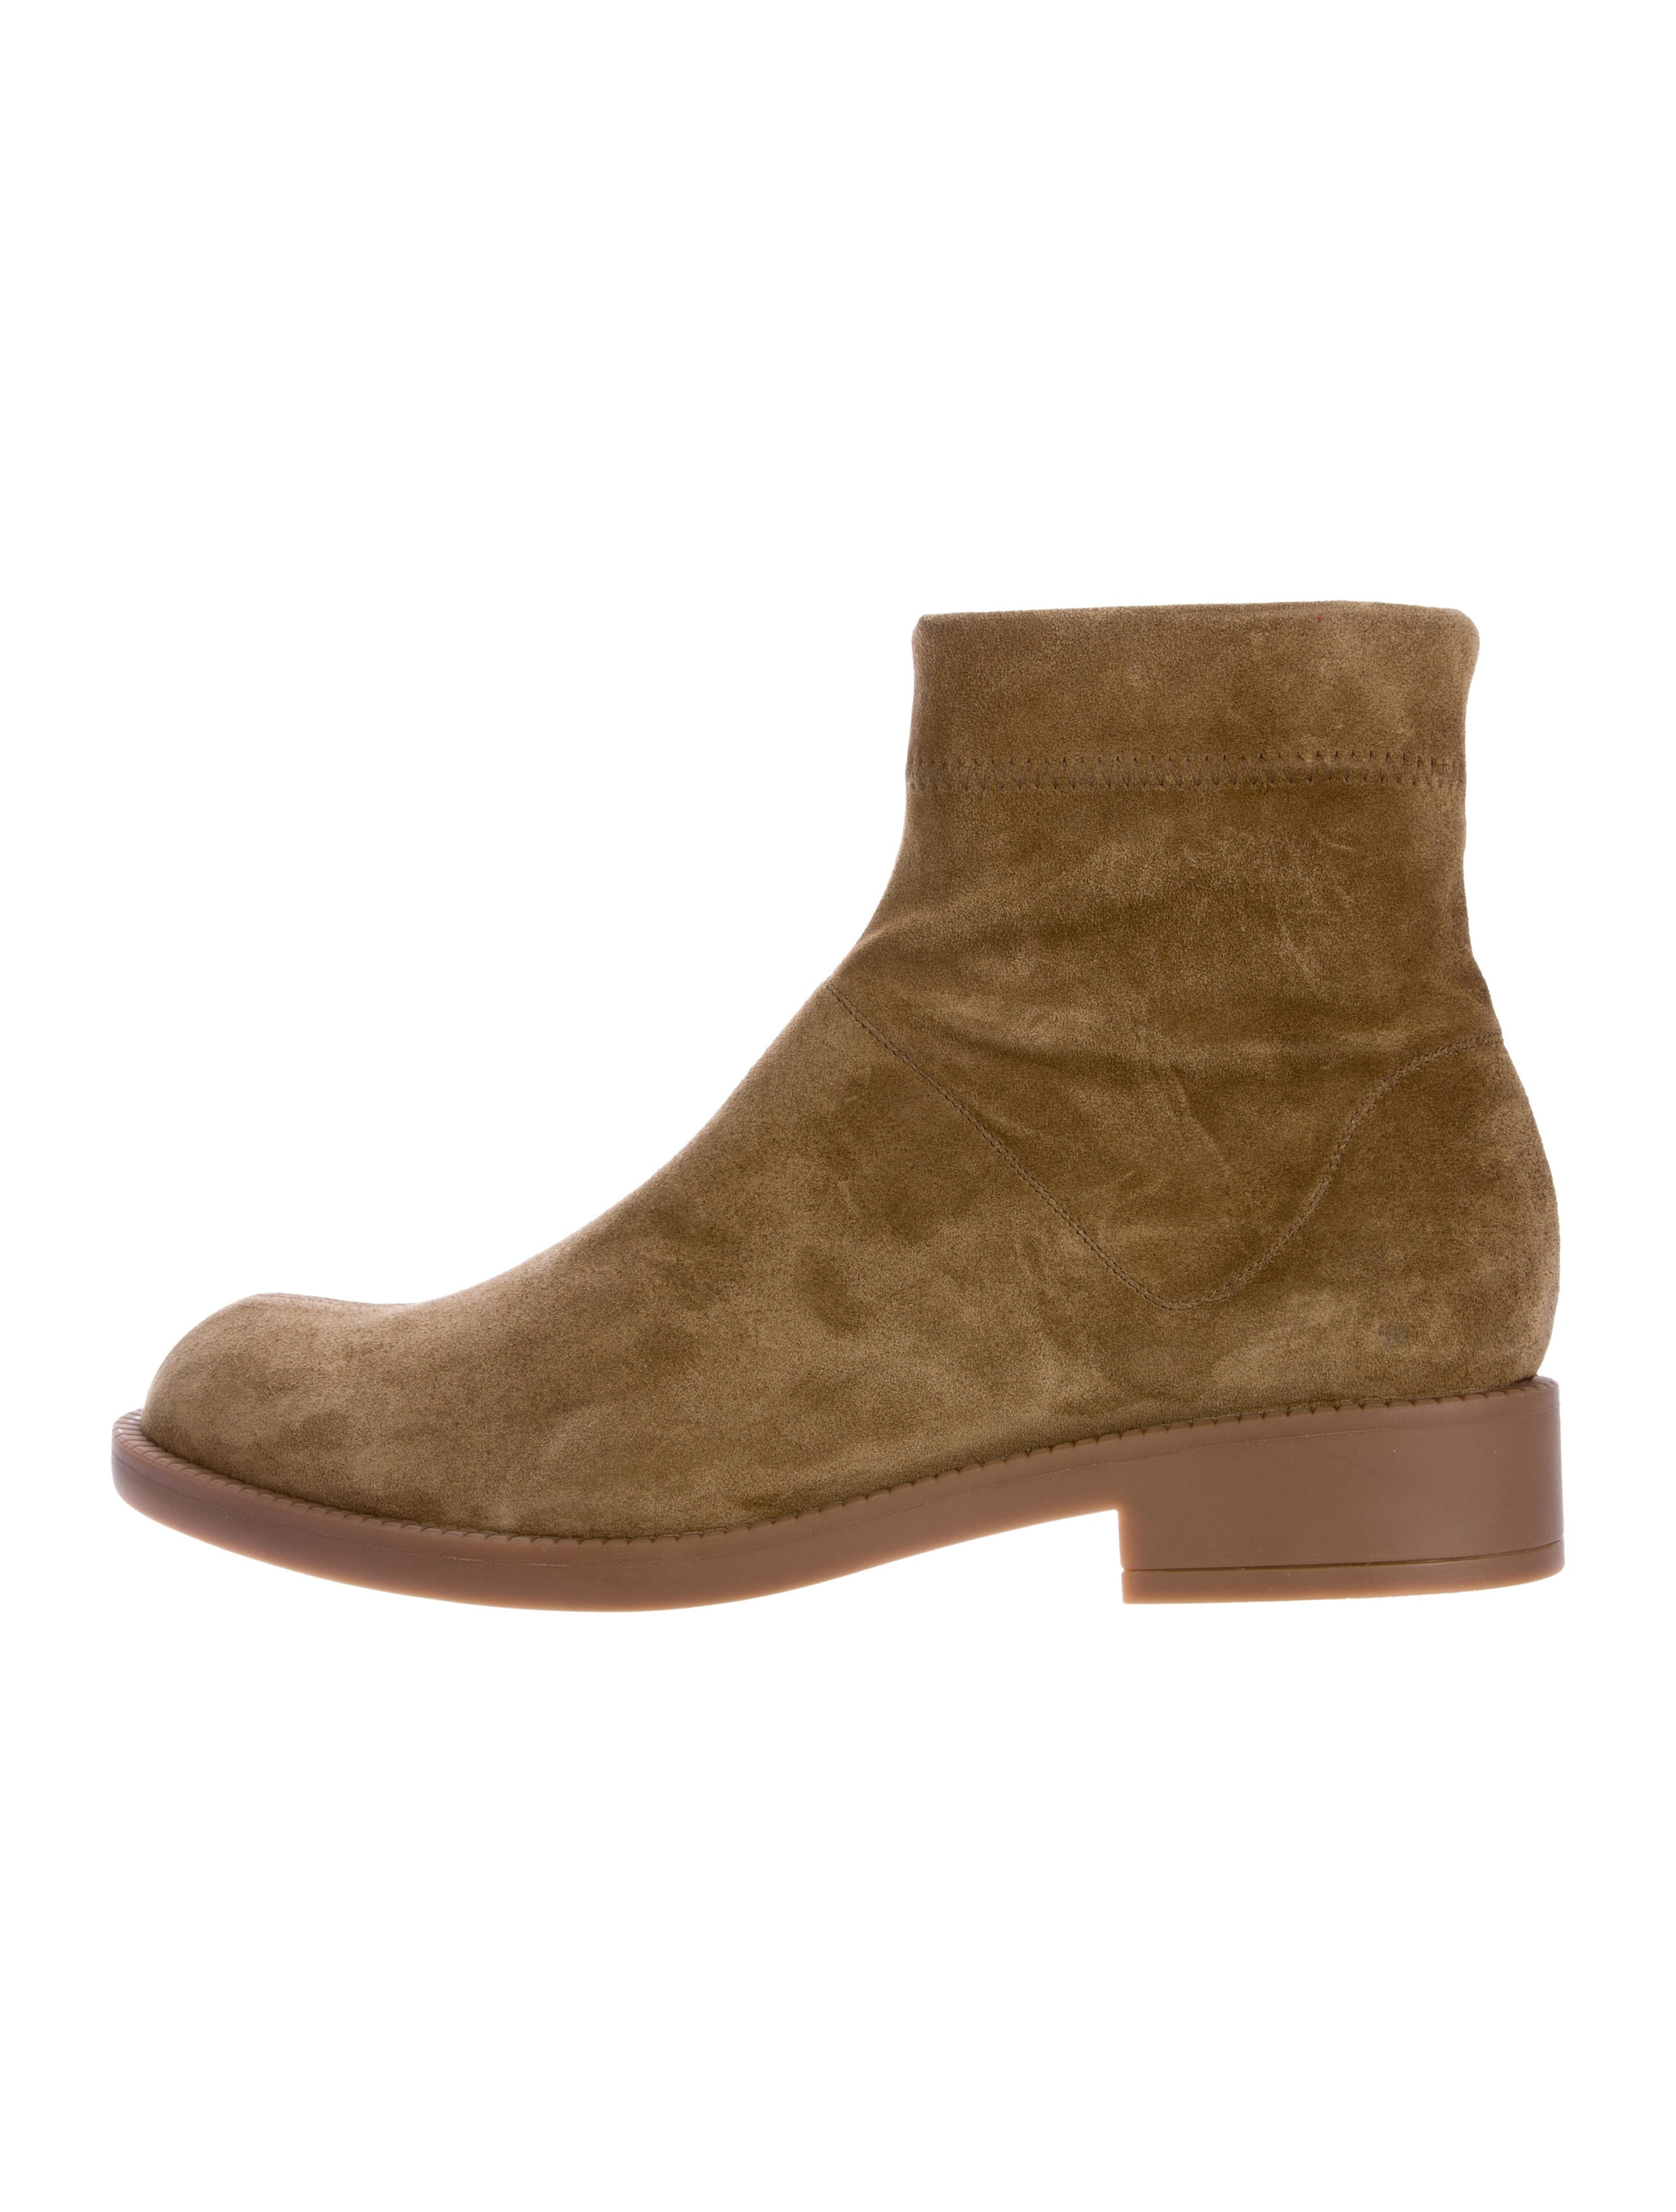 pedro garcia kana suede ankle boots shoes ped23556